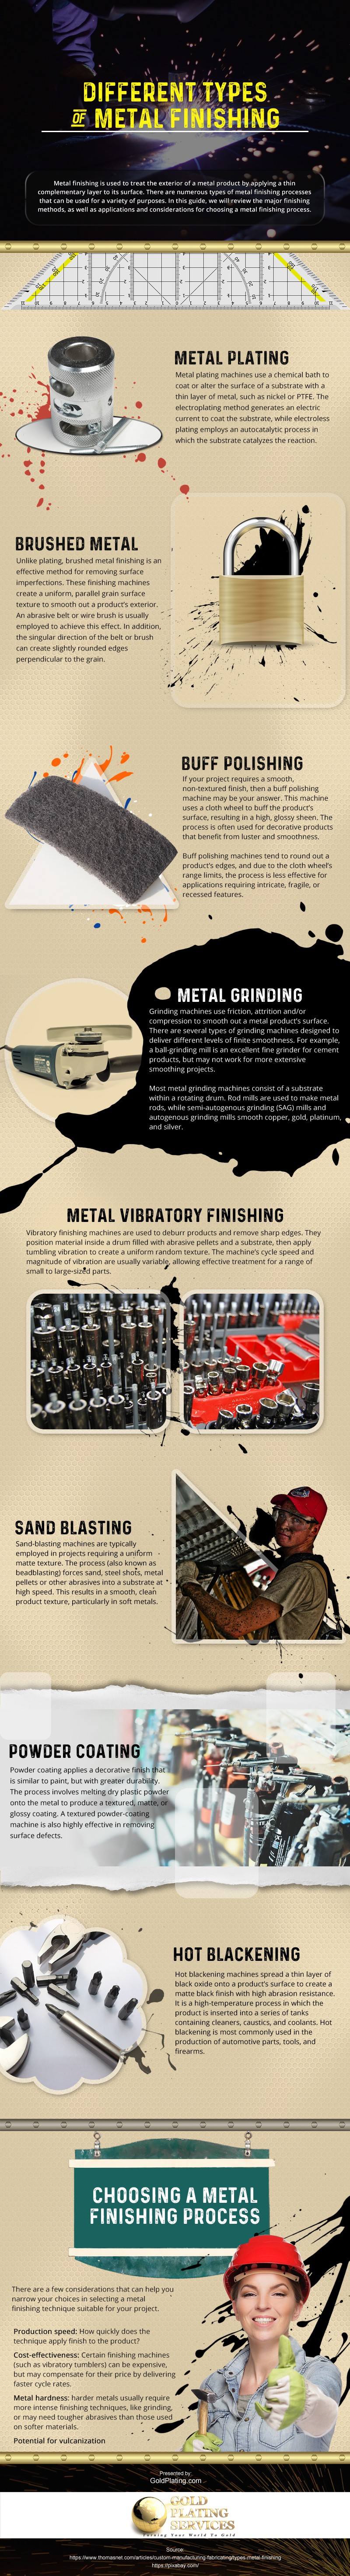 Different-Types-of-Metal-Finishing Infographic